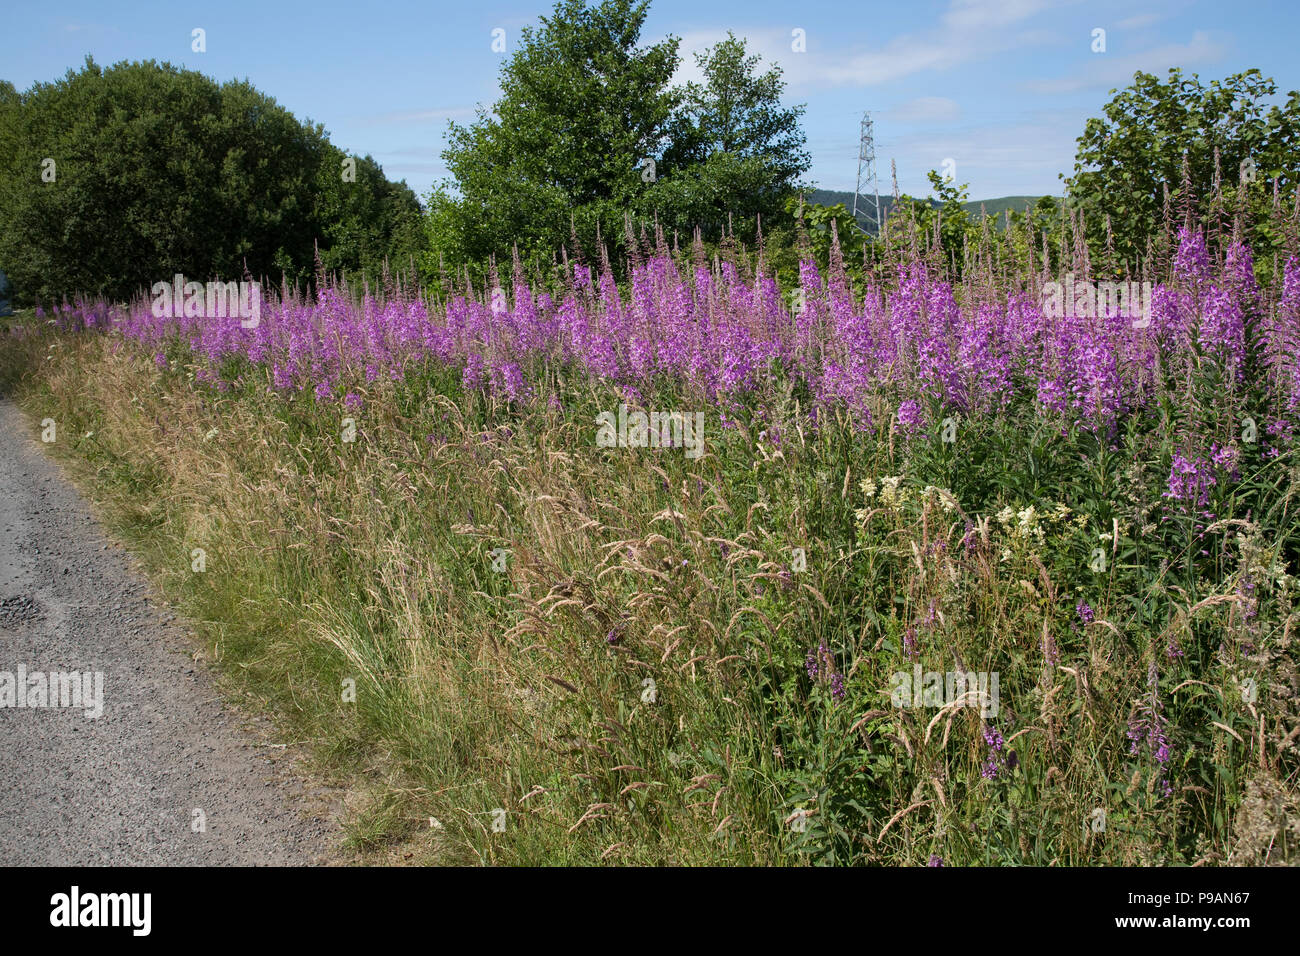 Large banks of Rosebay willowherb or fireweed Chamaenerion angustifolium uncut flowering on roadside verge Scotland UK Stock Photo